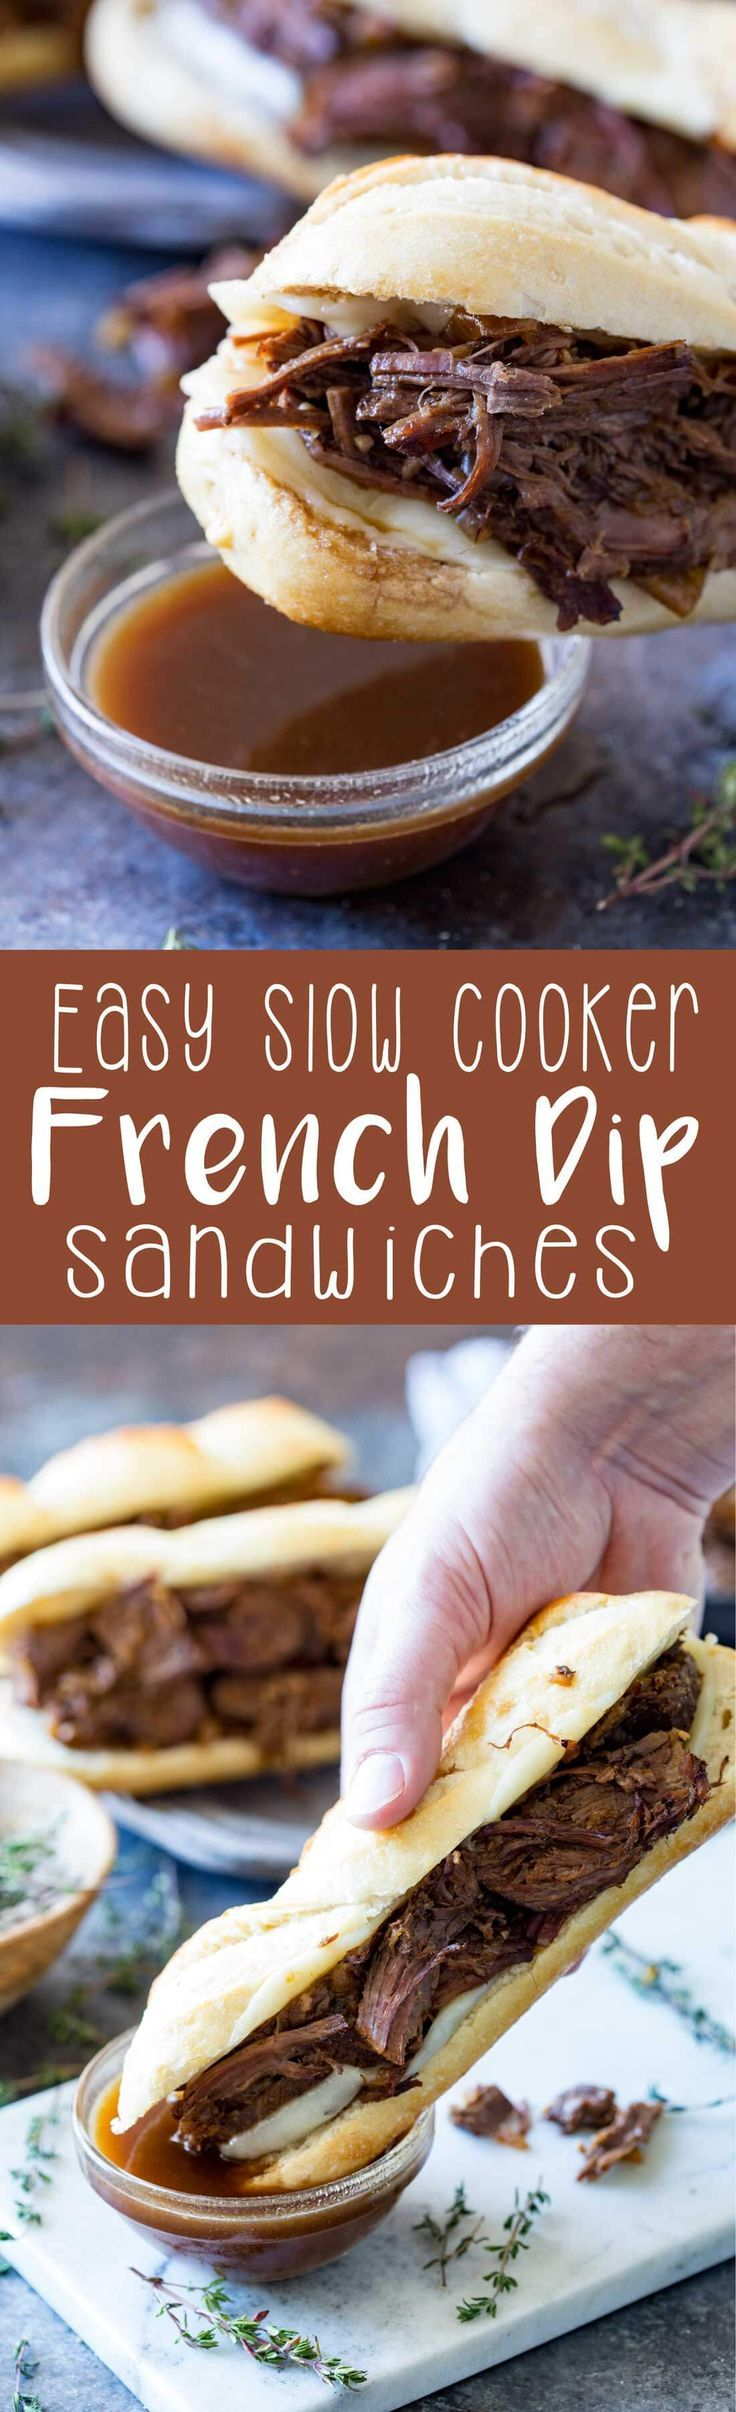 The most tender, delicious, flavorful French dip ever, and it only takes 10 minutes of prep! Easy Slow Cooker French Dip Sandwiches are a favorite meal at our house. We eat them at least once a week!